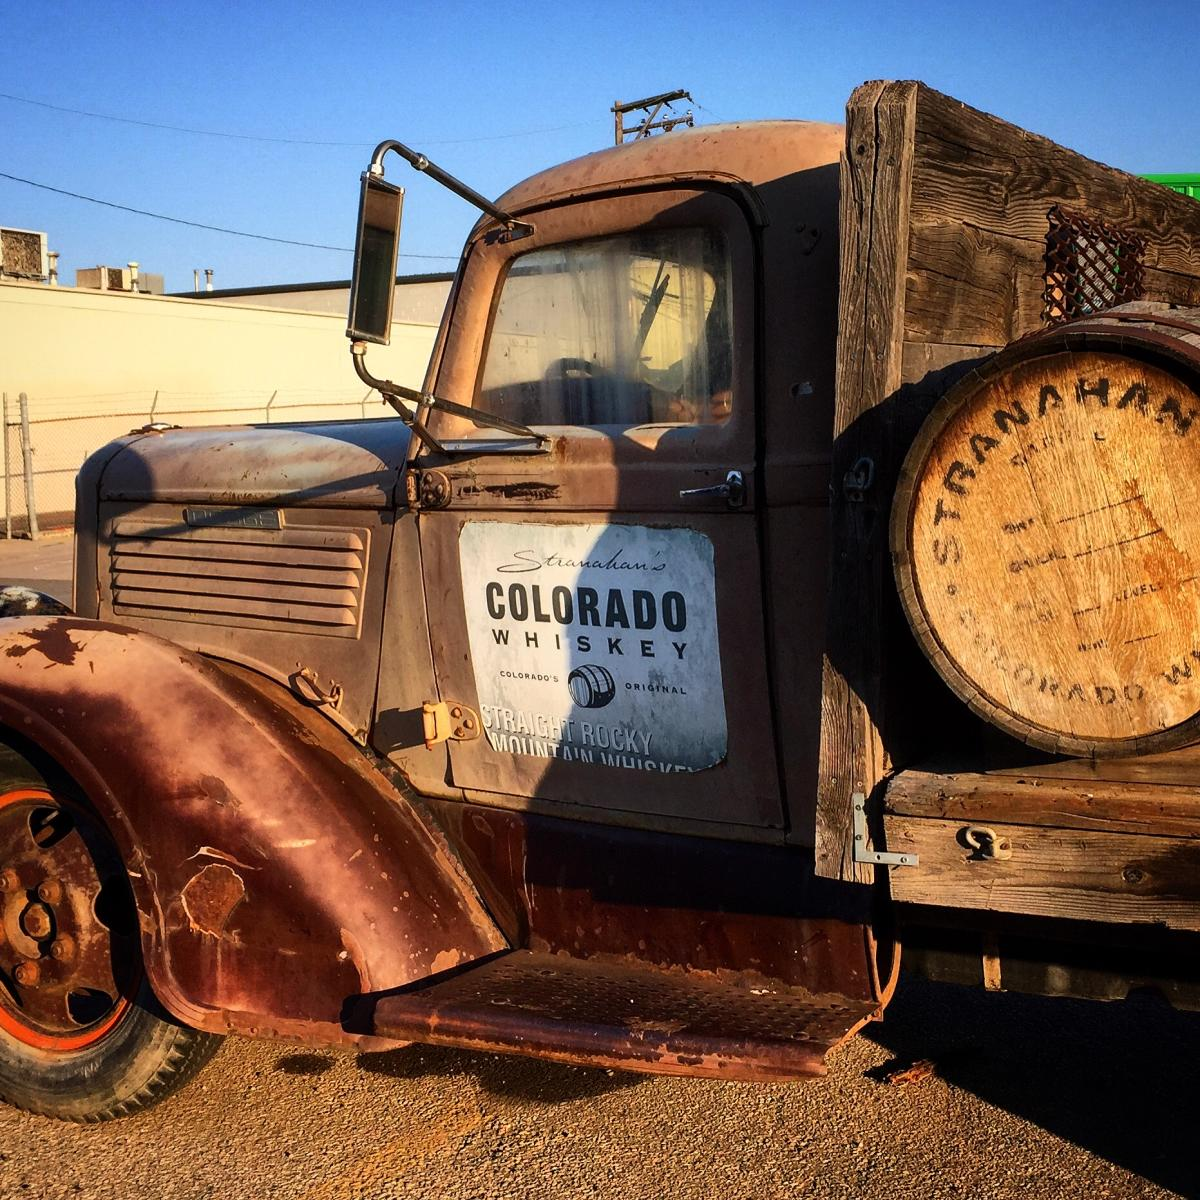 Stranahan's Colorado Whiskey truck